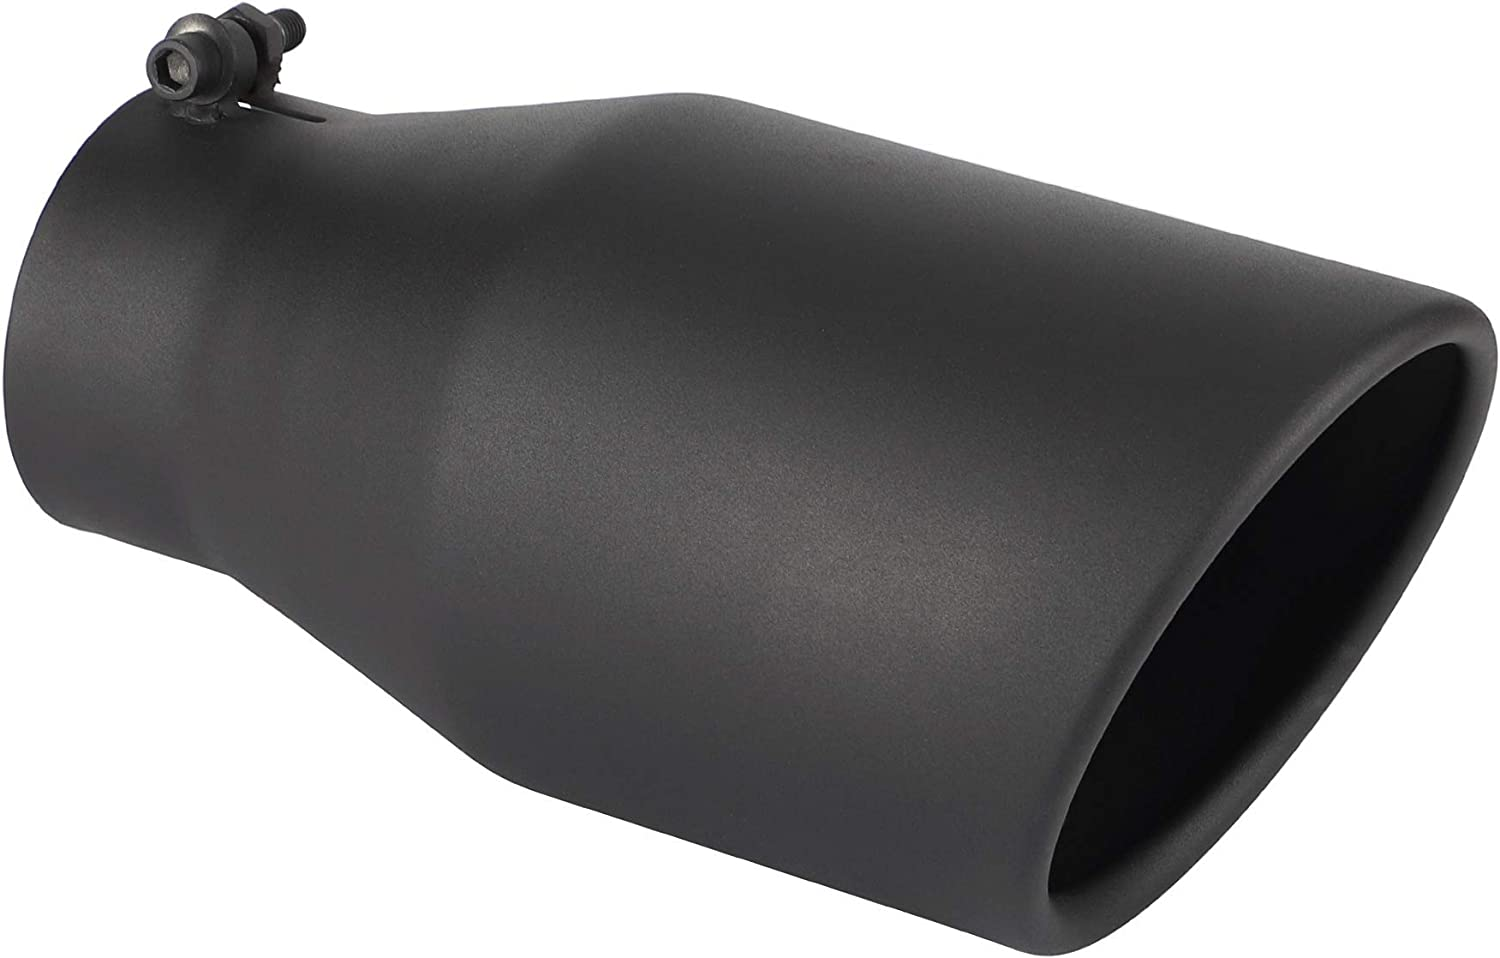 3 Inch Black Exhaust Tip Richeer Universal 3 Inside Diameter Diesel Exhaust Tailpipe Tip 3 x 4.5 x 9 Clamp On Design with Ball End L Wrench